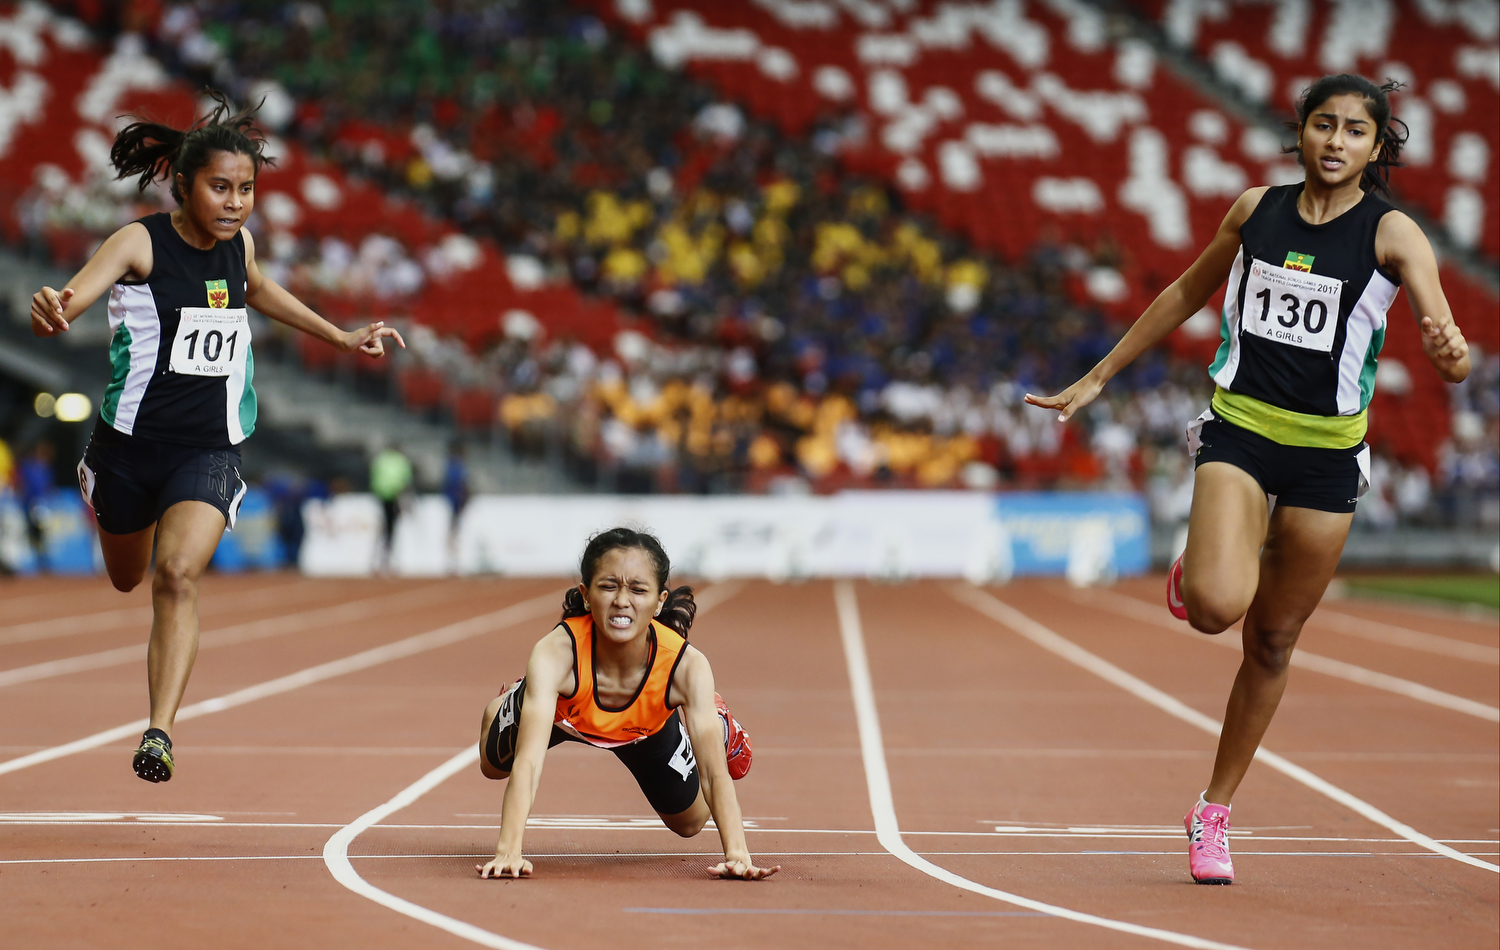 Isma Zakiah (C) of Singapore Sports School falls as she,Tanisha Moghe (R) and Amirah Aljunied (L) of Raffles Institution cross the finish line during the 'A' Division girls' 100m final during the 79th Singapore Open Track and Field Championships at the National Stadium on April 28, 2017 in Singapore.